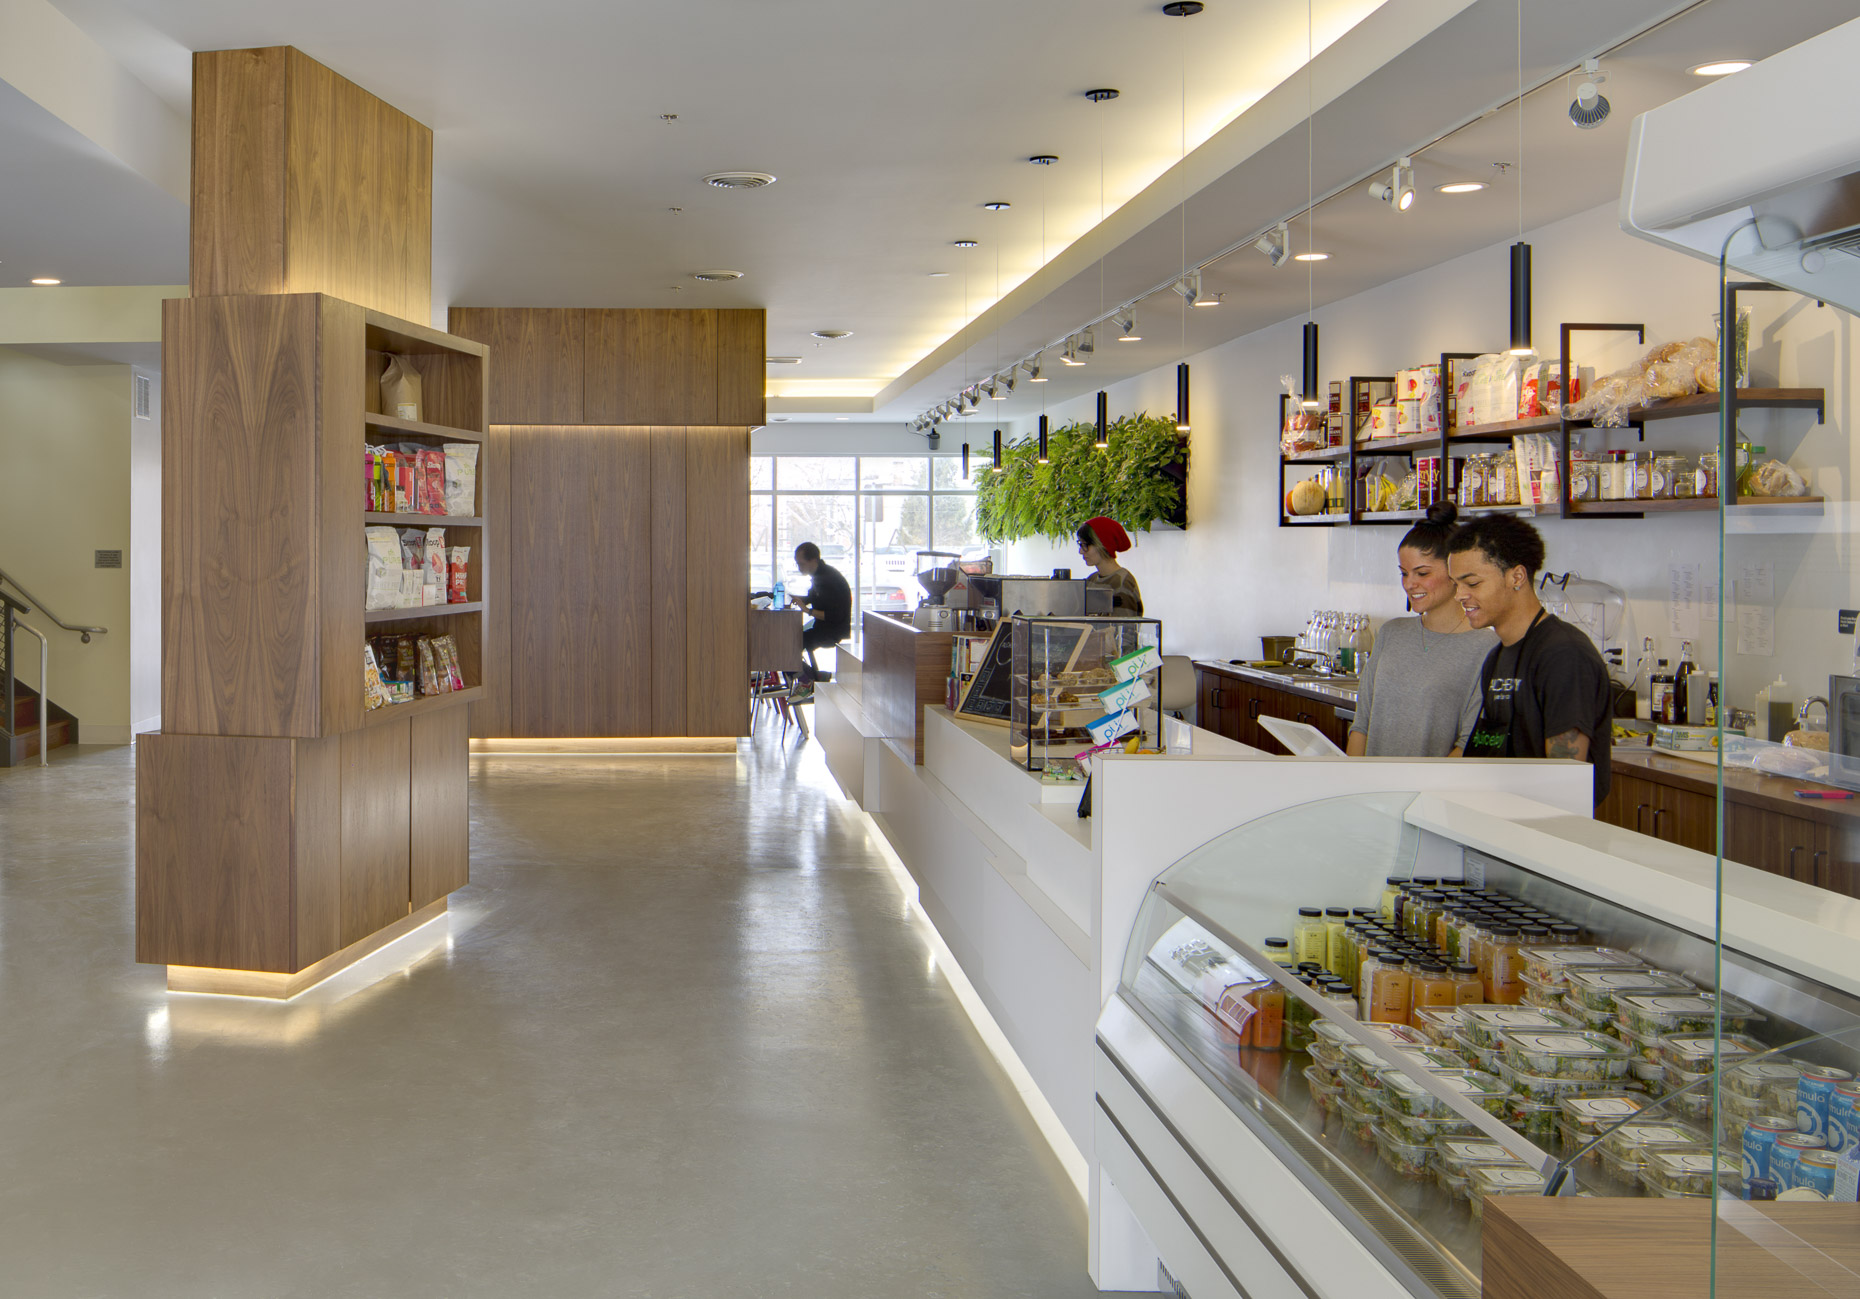 Alchemy Juice Bar & Cafe by Tim Lai Architect photographed by Brad Feinknopf based in Columbus, Ohio